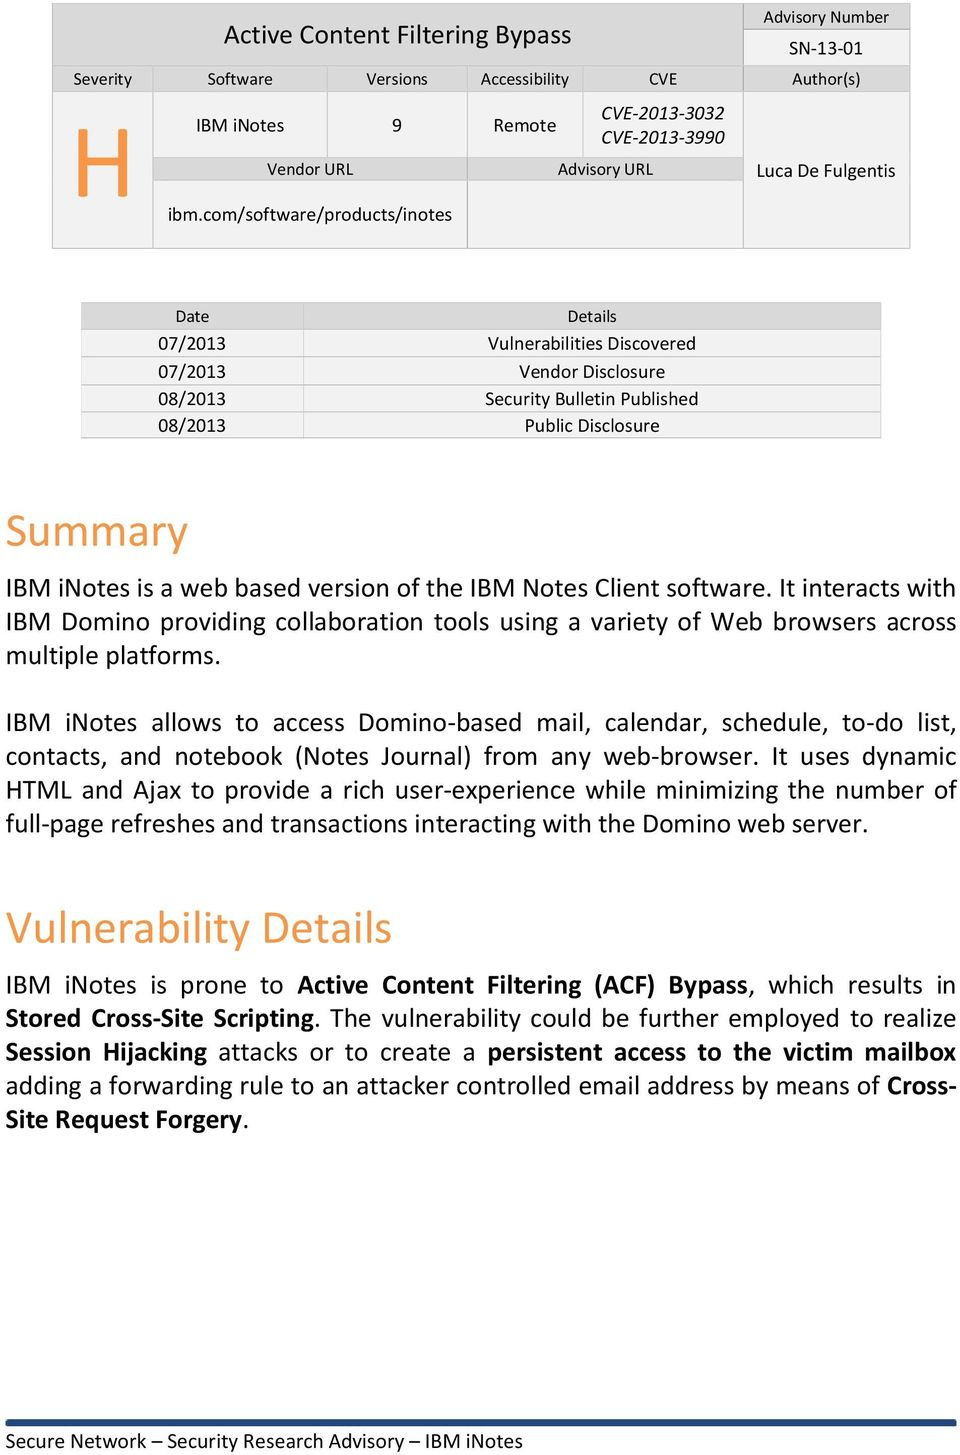 Security Research Advisory IBM inotes 9 Active Content Filtering